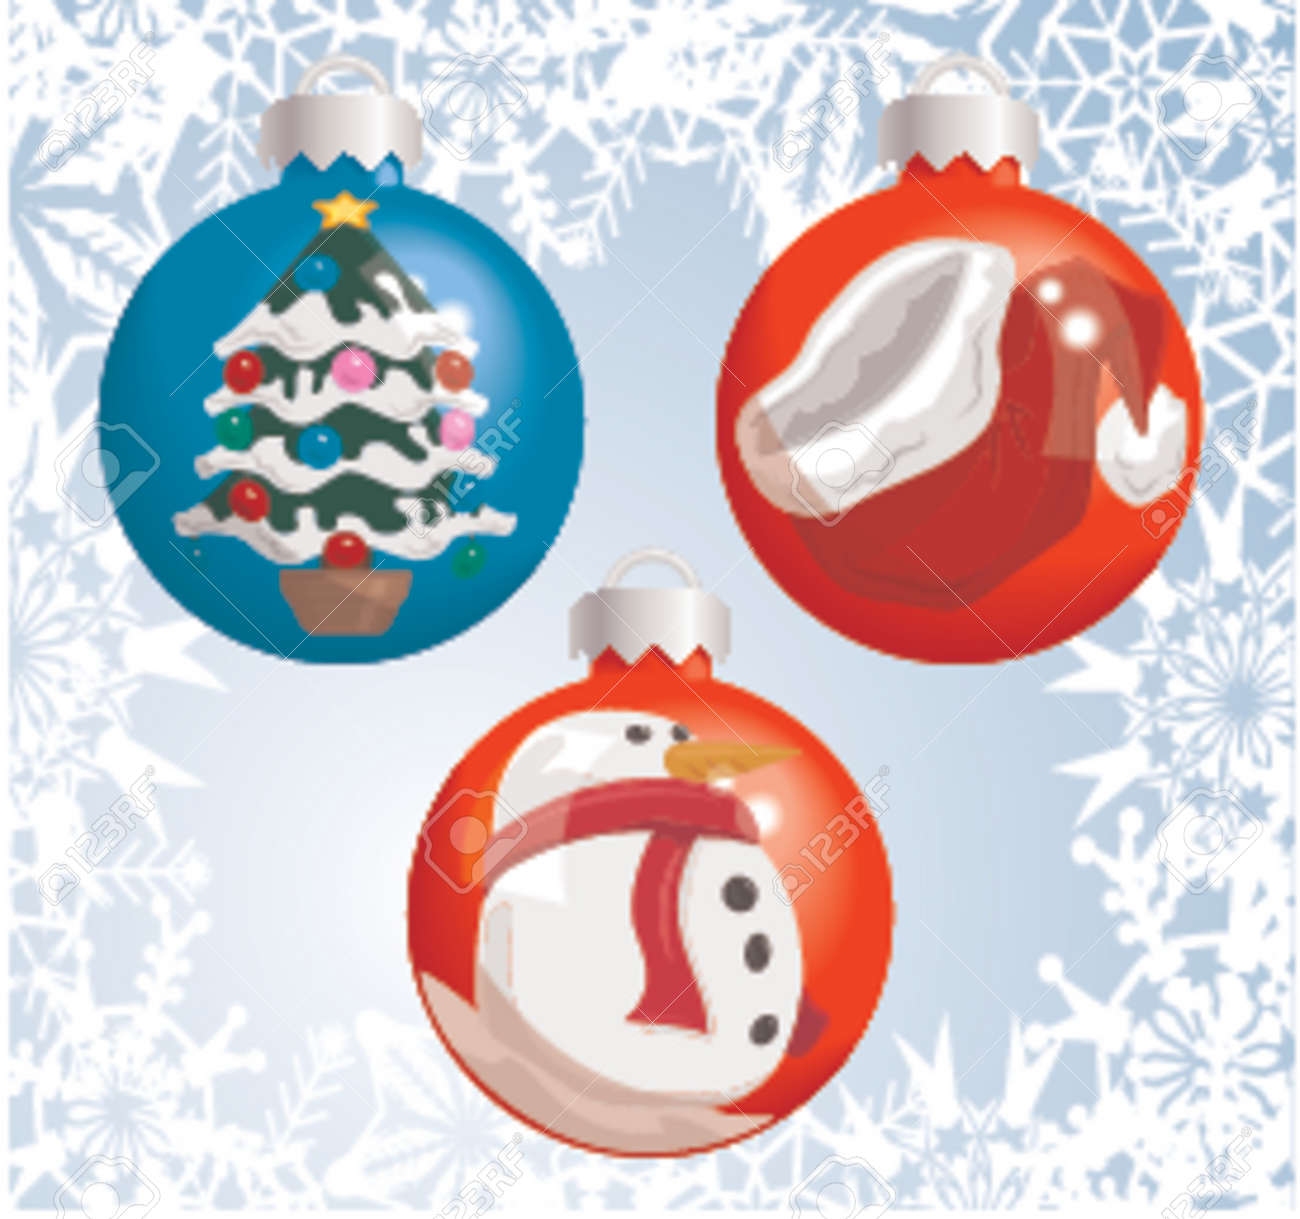 Christmas baubles with pictures of a Santa hat, snowman, and Christmas tree reflected or painted on them! Shading by blends, no meshes used. Stock Vector - 663311